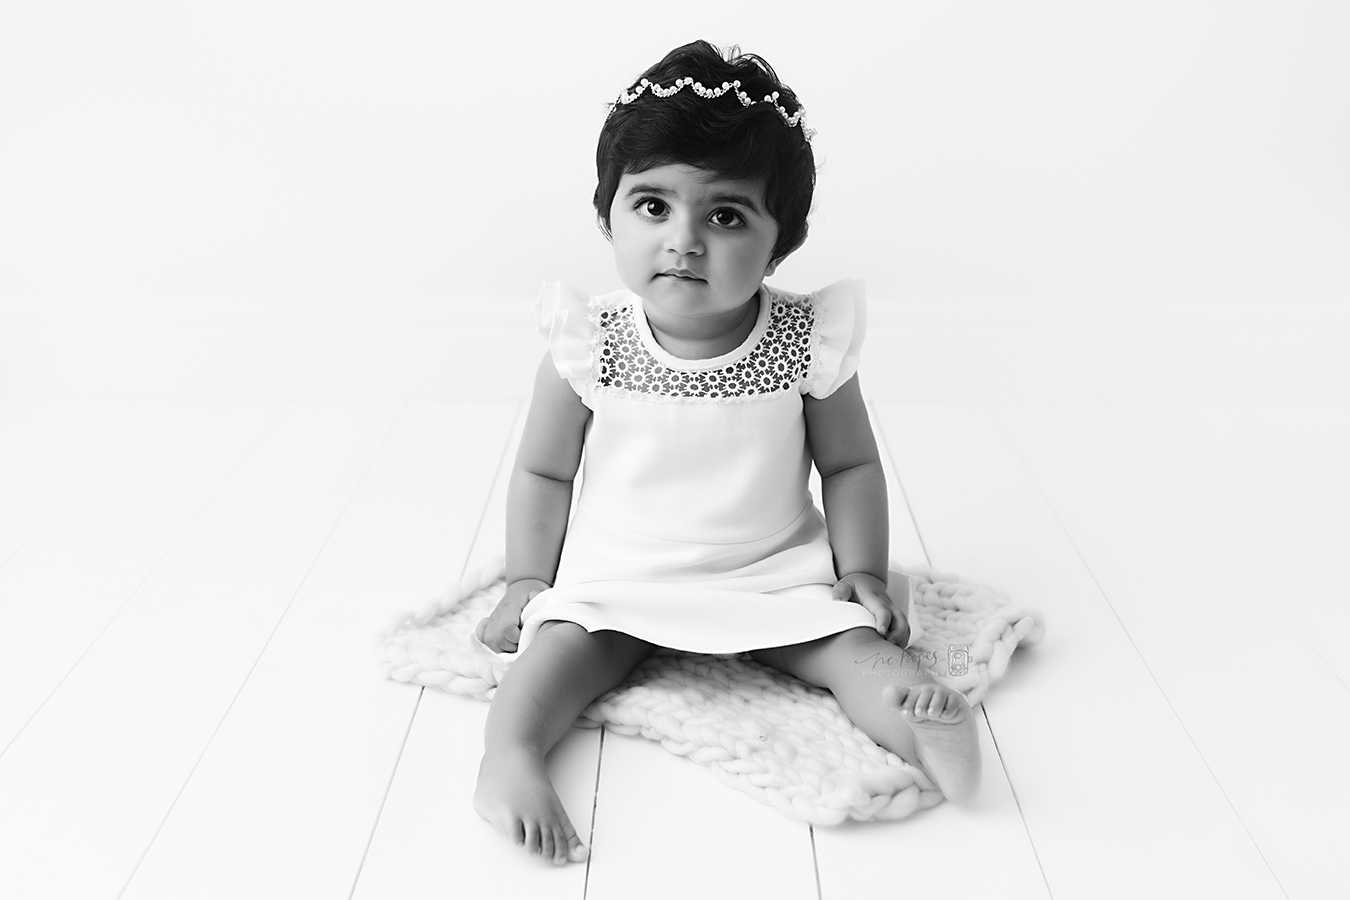 Black and white baby photos Stockport